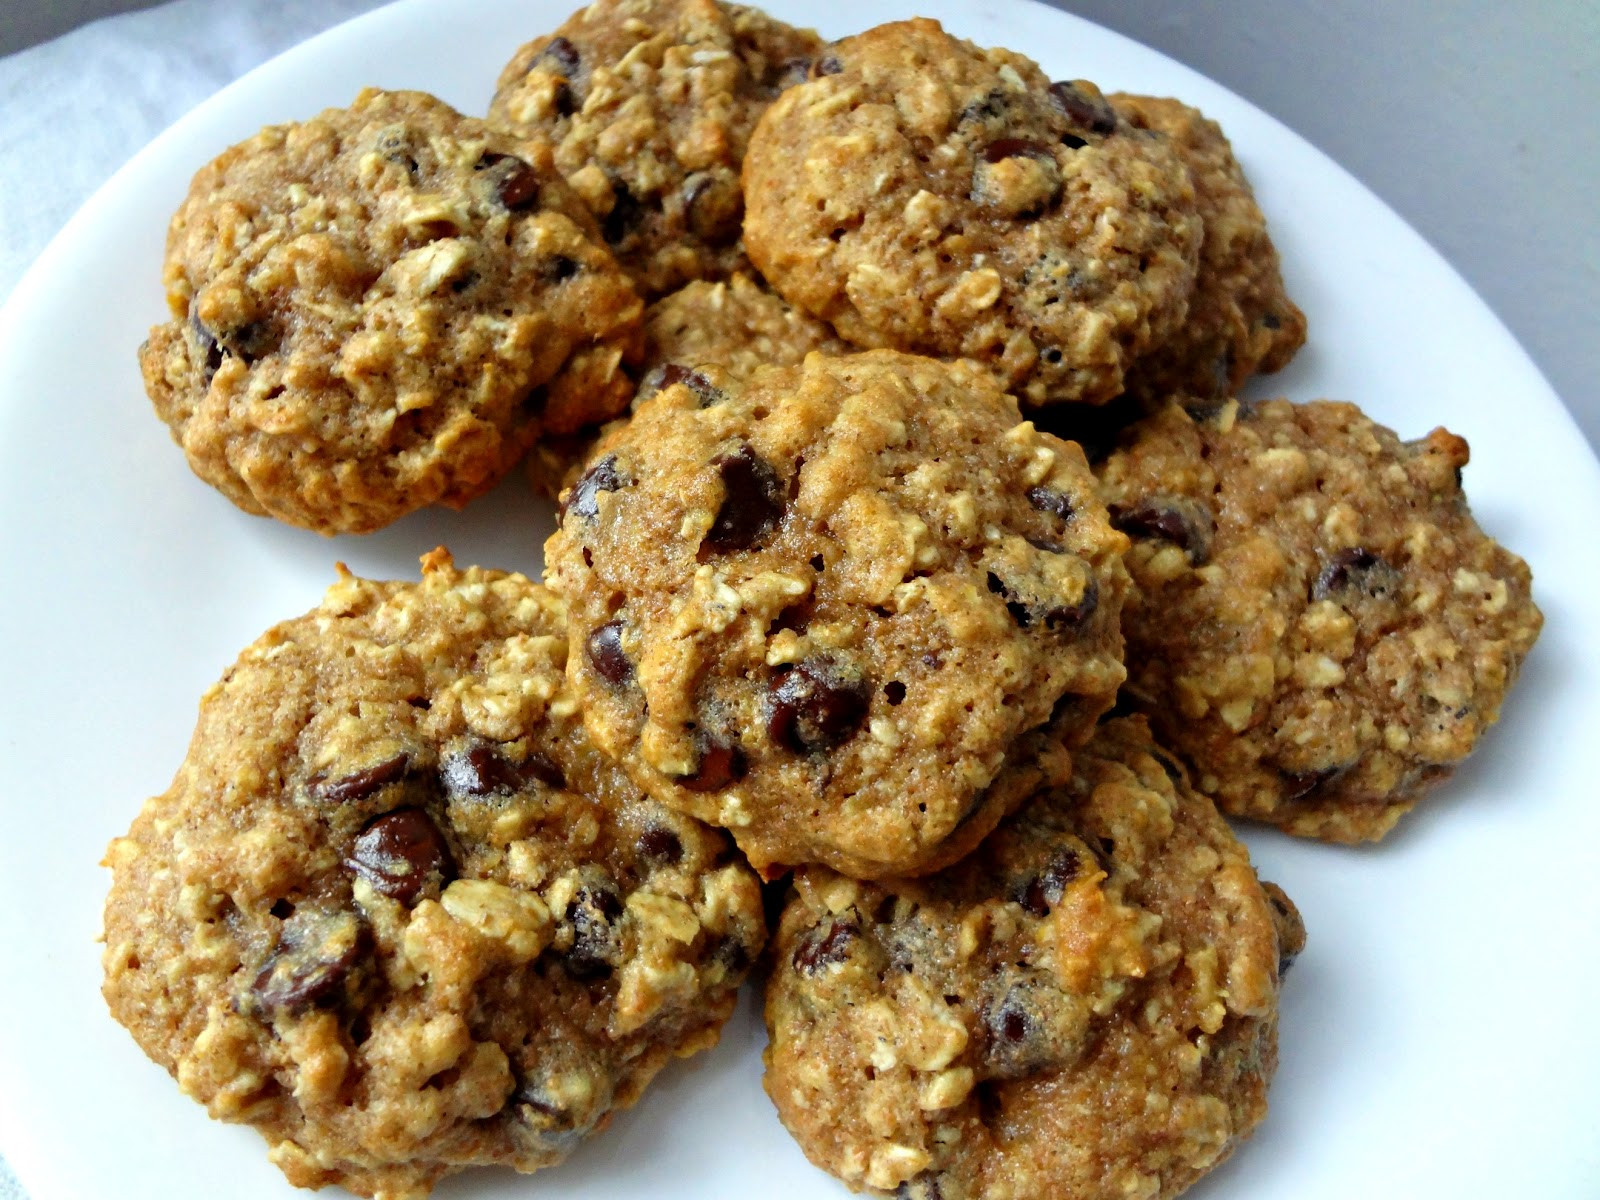 Healthy Oatmeal Cookies  The Cooking Actress Healthy Oatmeal Chocolate Chip Cookies